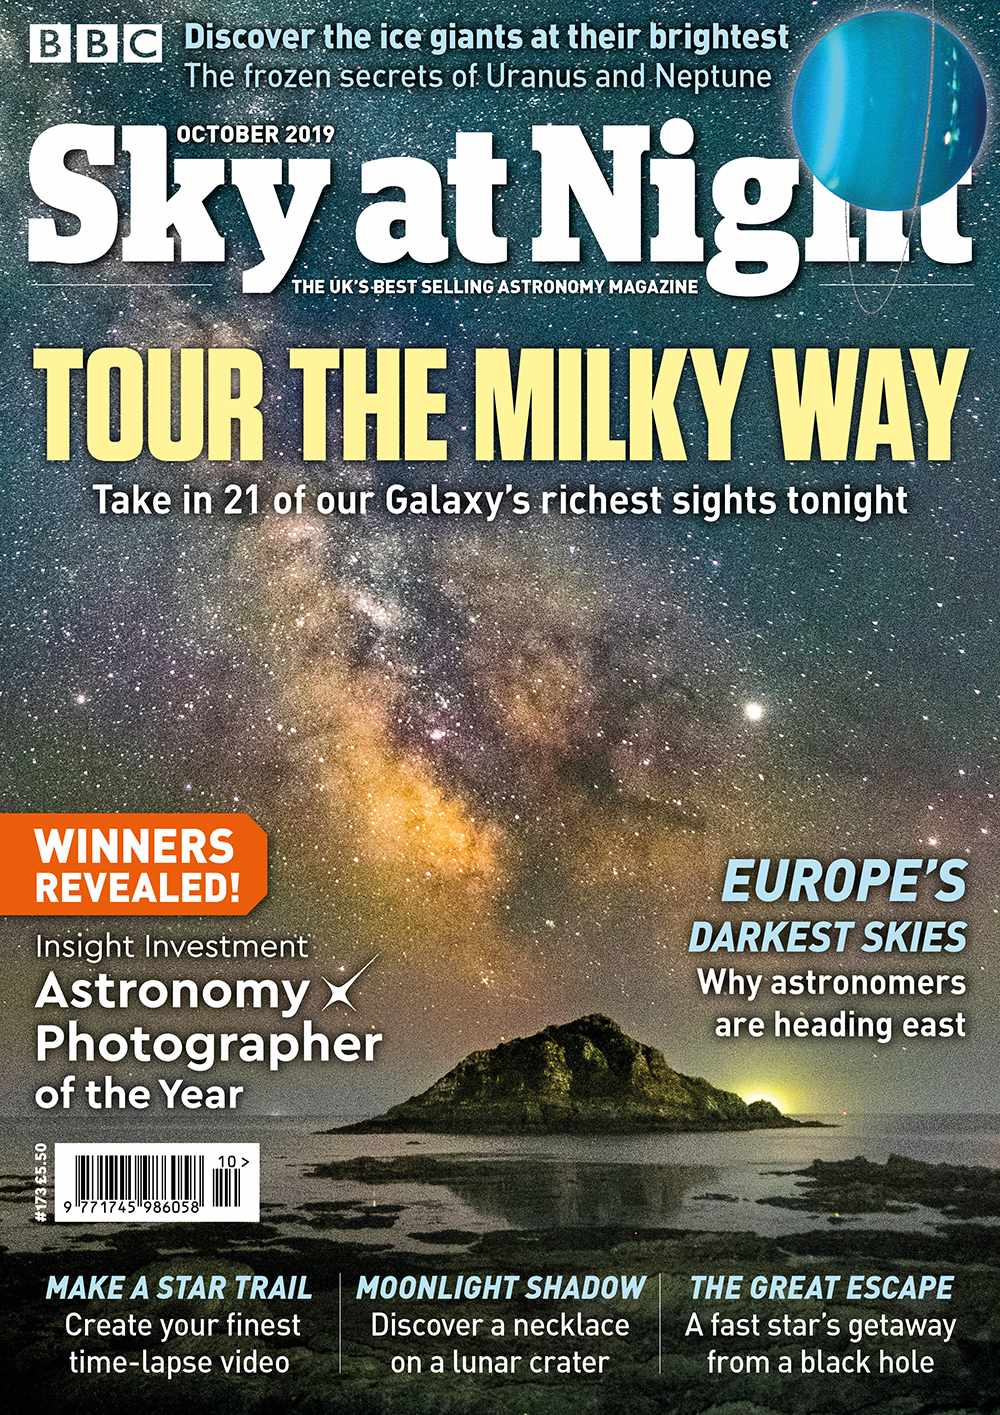 The October 2019 issue of BBC Sky at Night Magazine